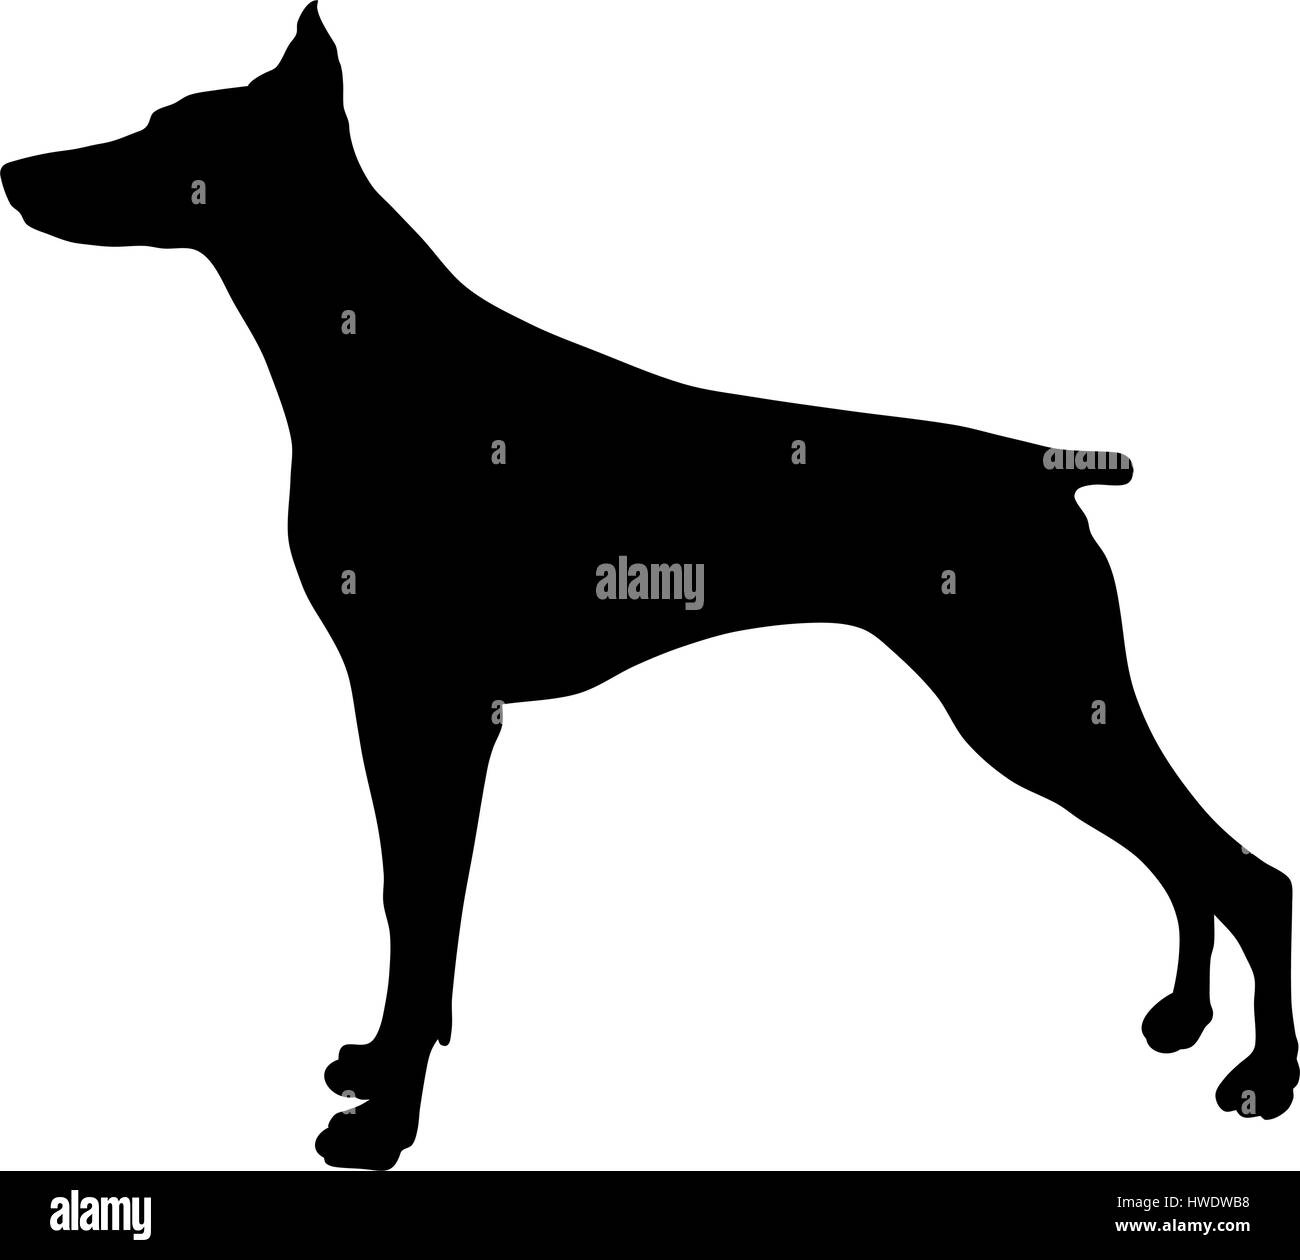 Abstract vector illustration of dog silhouette - Stock Image